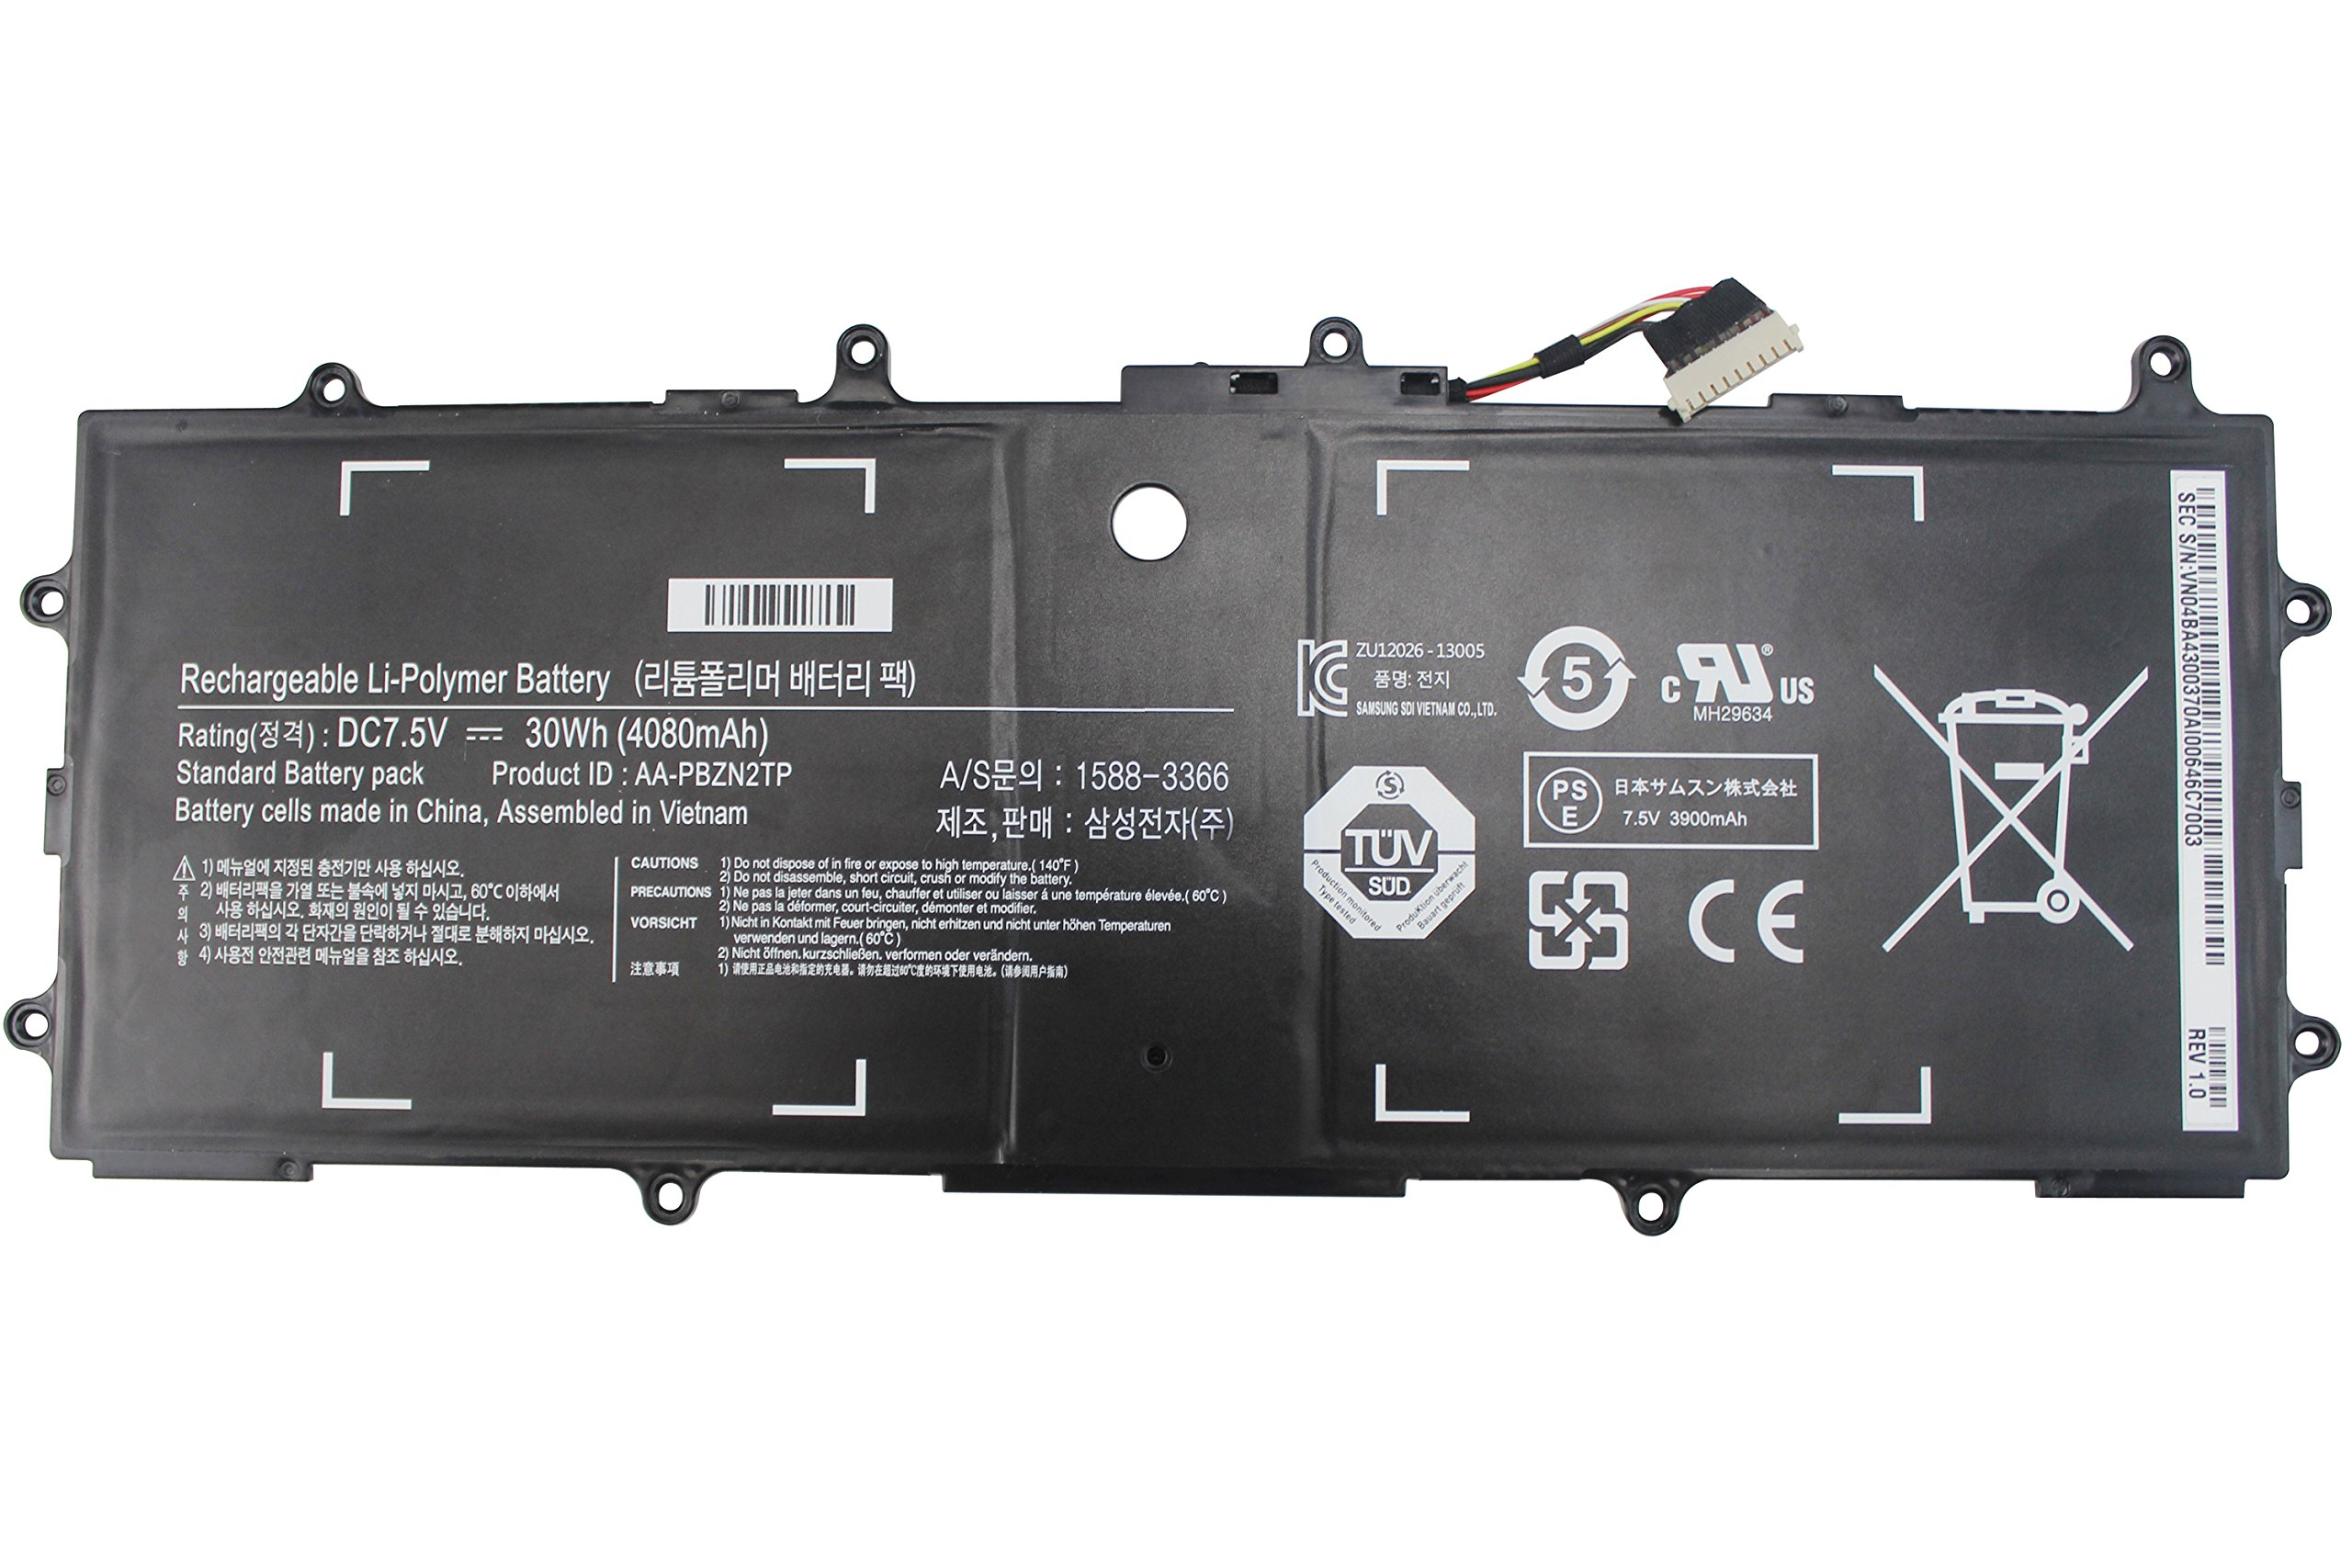 Shareway 30Wh Replacement Laptop Battery For Samsung ATIV 500T 905S3G 910S3G 915S3G Chromebook XE500T1C XE303C12 XE303 AA-PBZN2TP BA43-00355A - 12 Months Warranty!